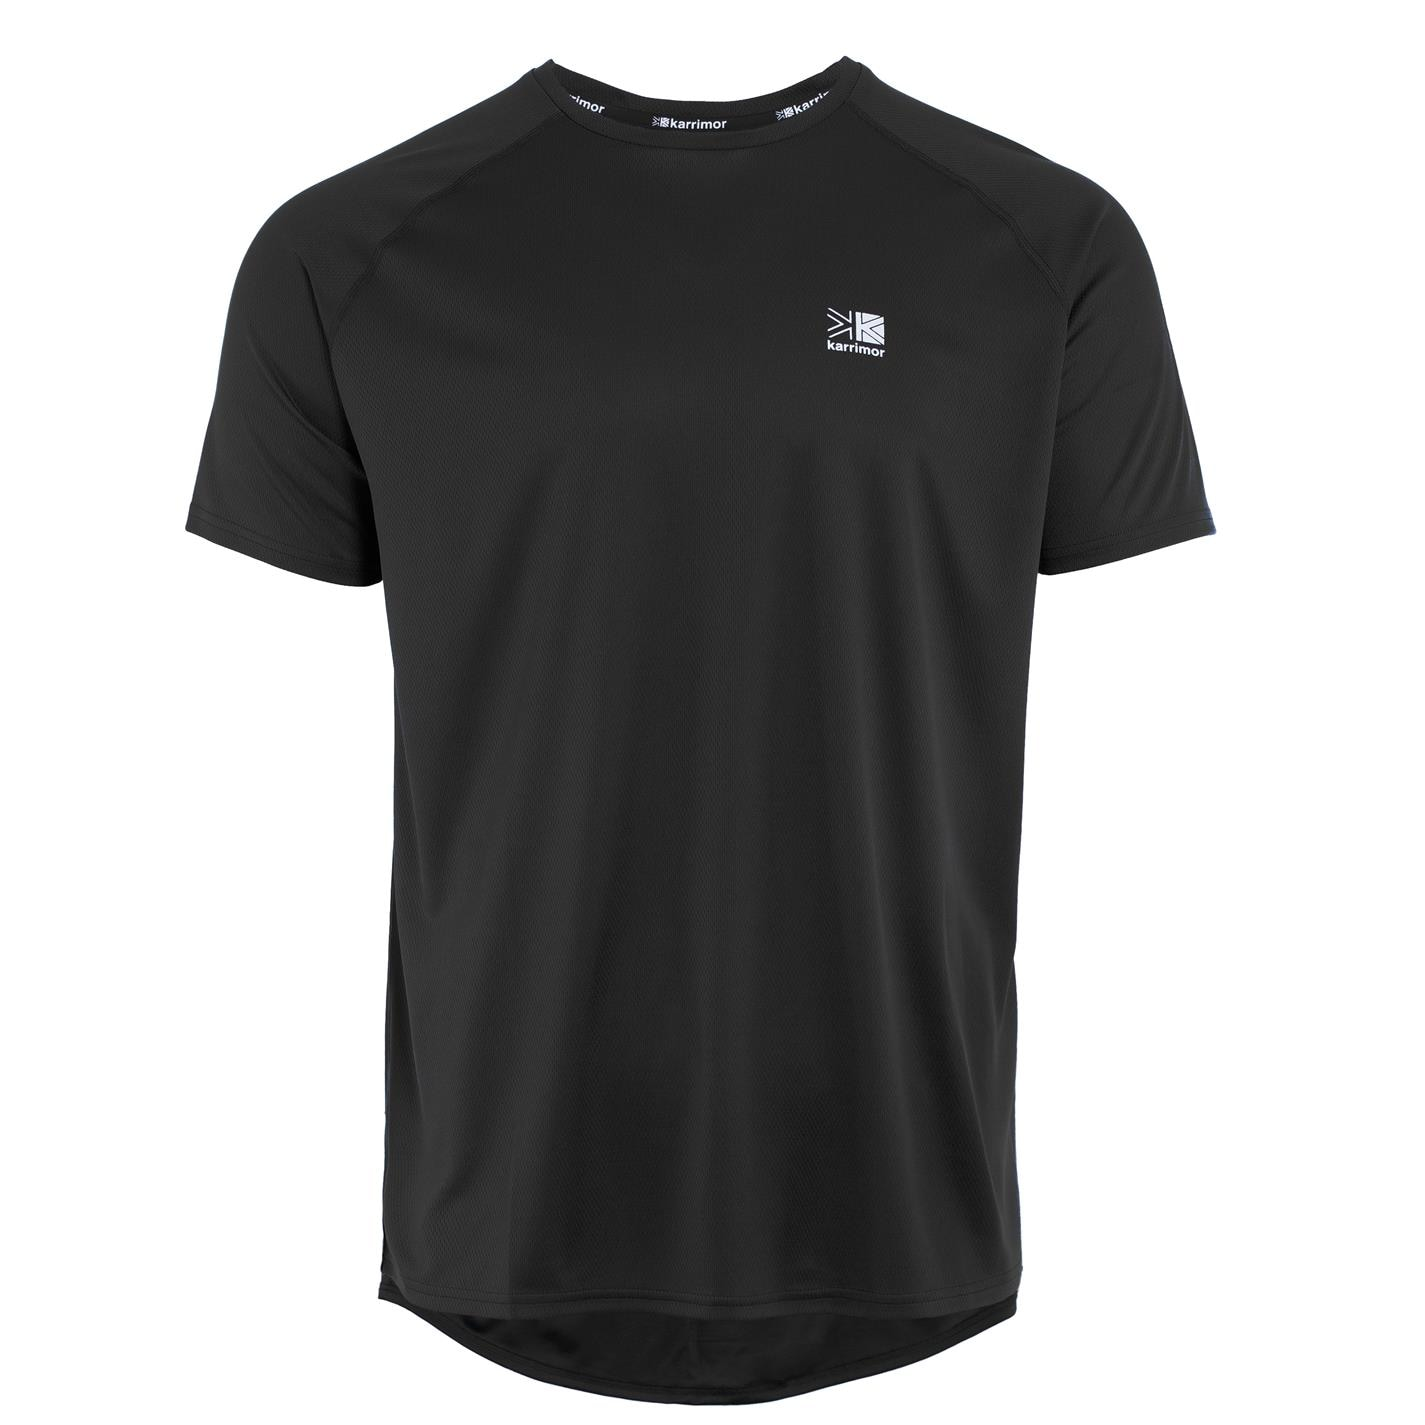 T Short Karrimor Karrimor Short Sleeve Run T Shirt Mens T Shirts